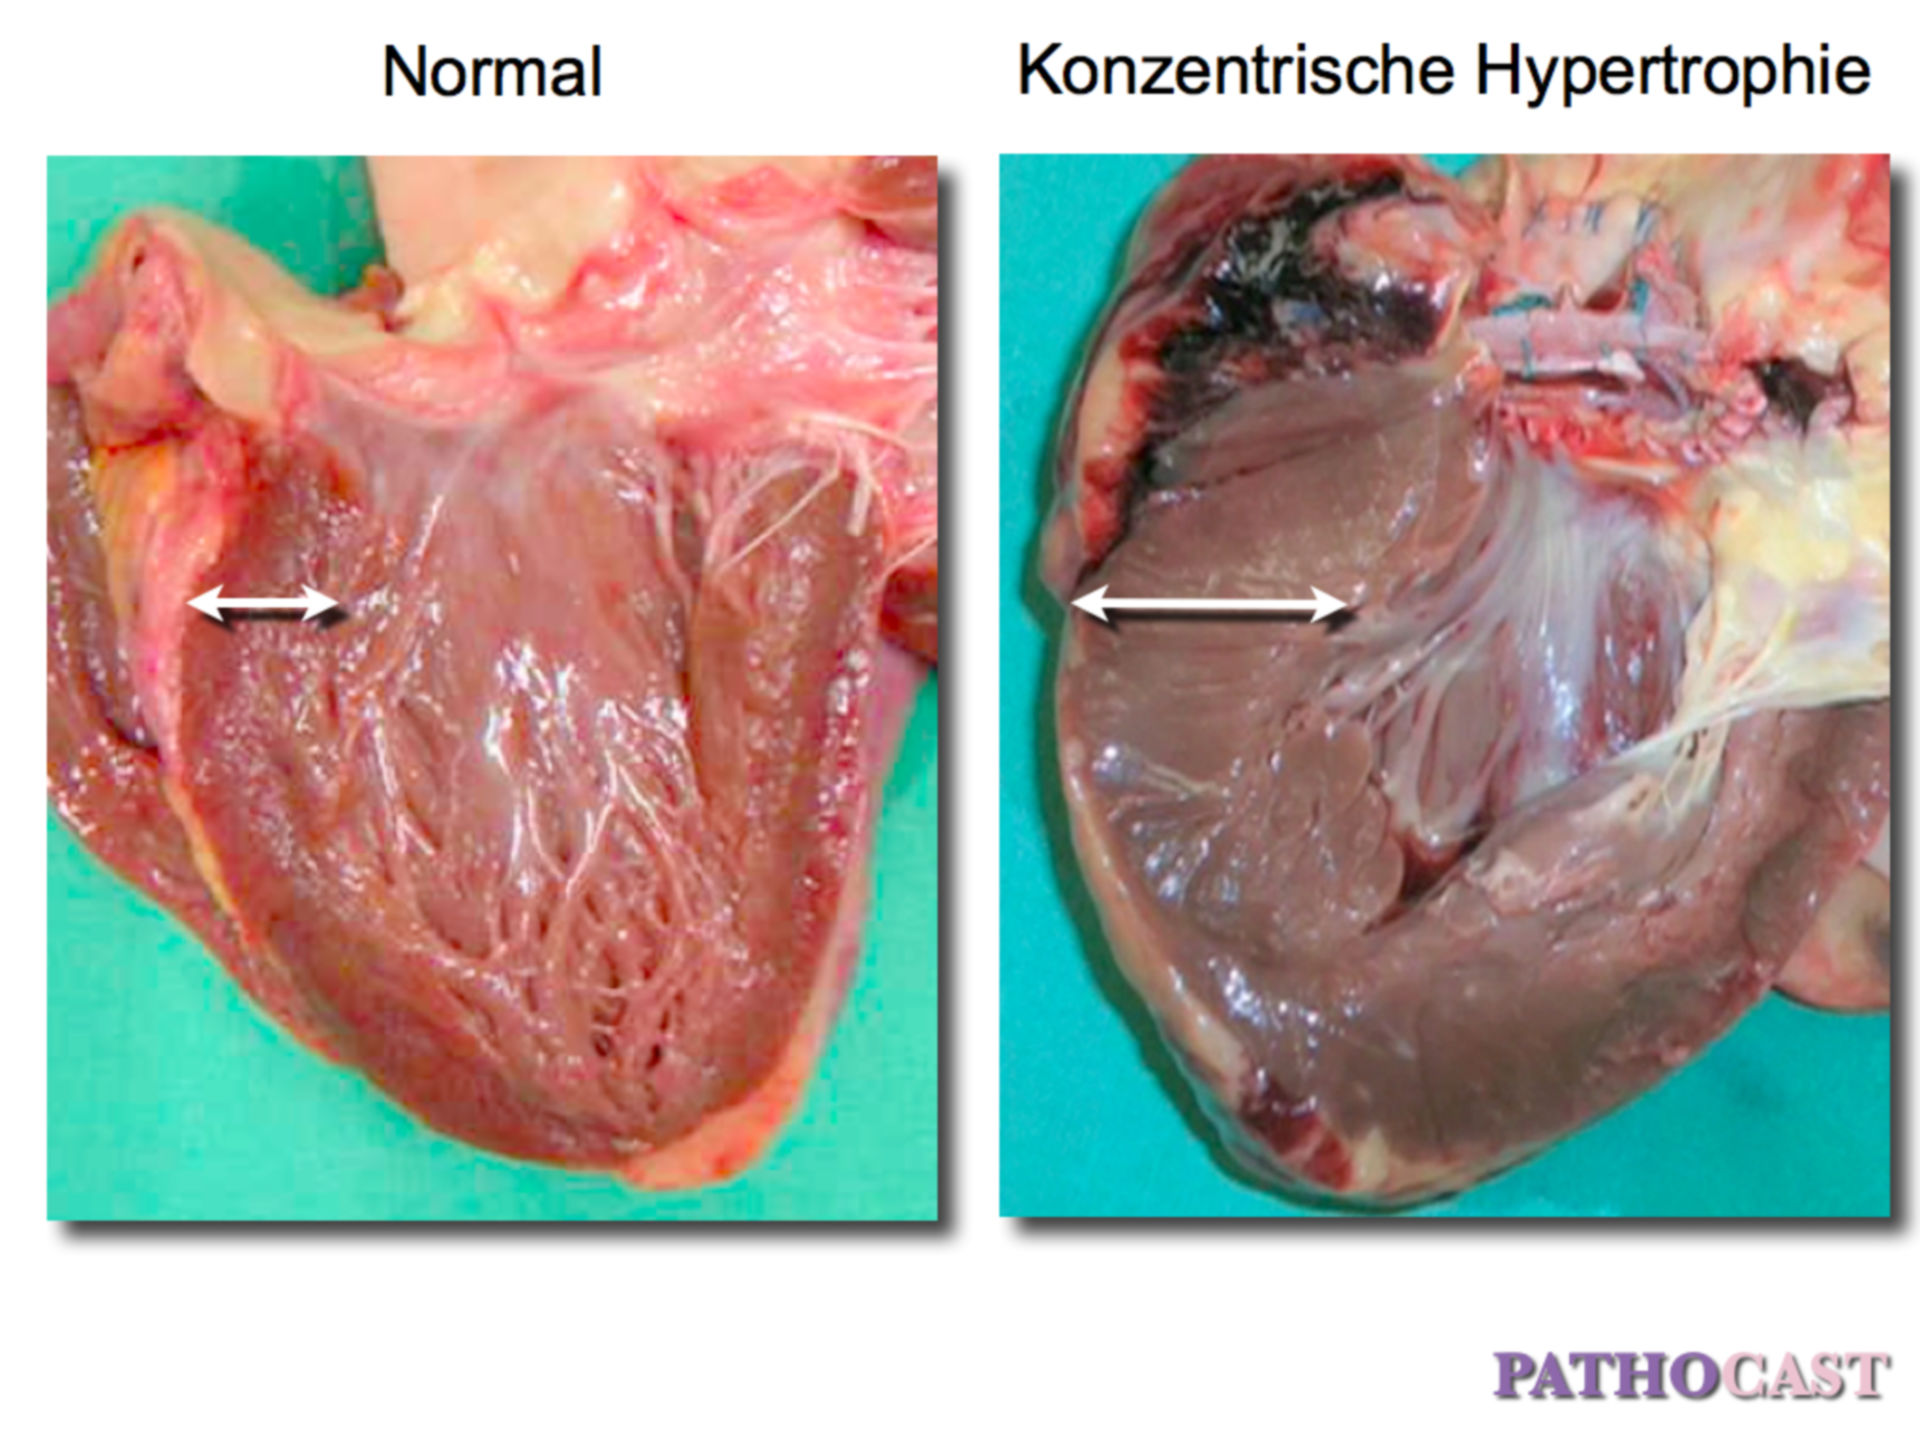 concentric myocardial hypertrophy